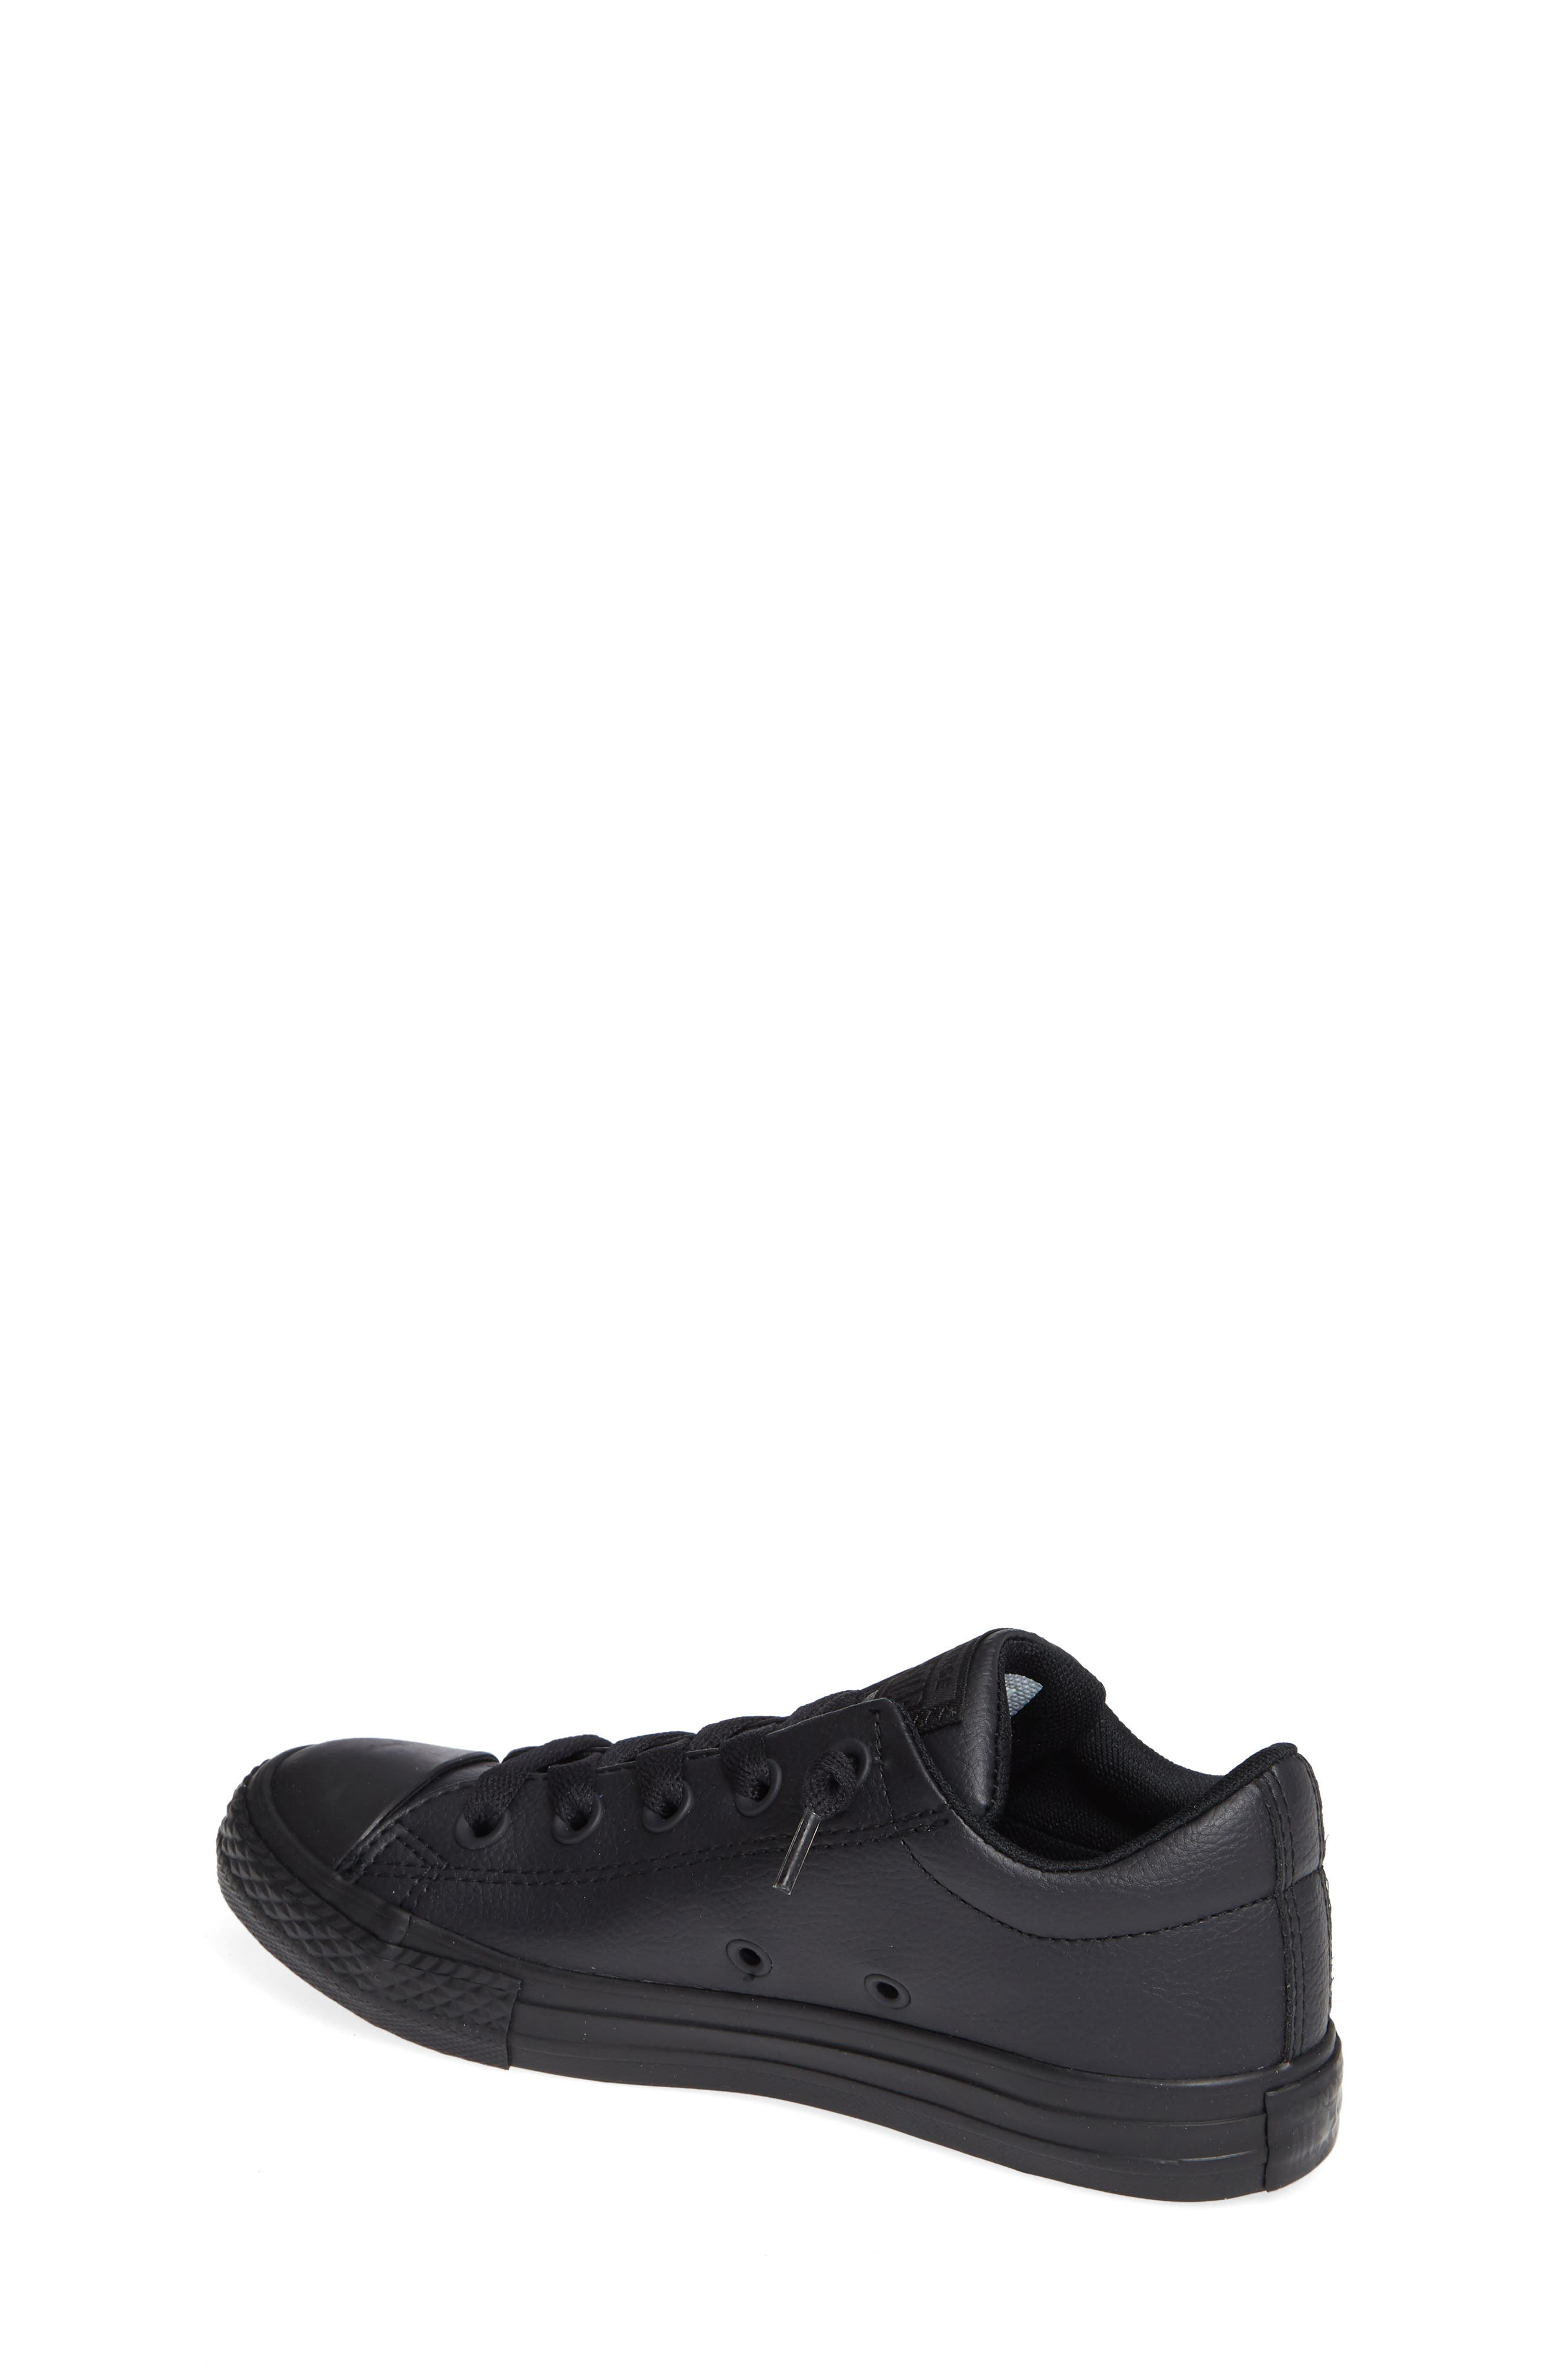 CONVERSE, Chuck Taylor<sup>®</sup> All Star<sup>®</sup> 'Street Ox' Sneaker, Alternate thumbnail 2, color, BLACK MONO